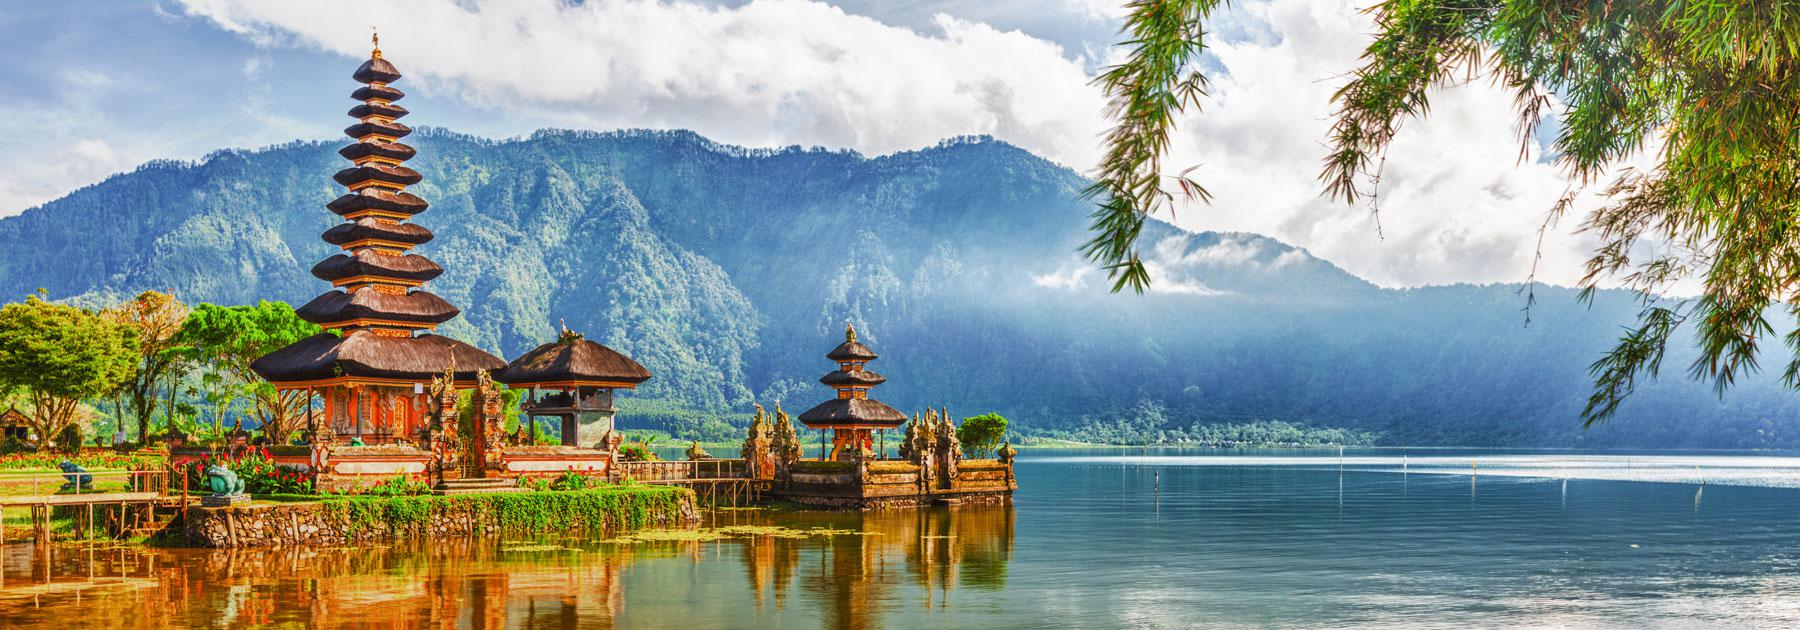 Places you have to see before you die Indonesia Well take you there